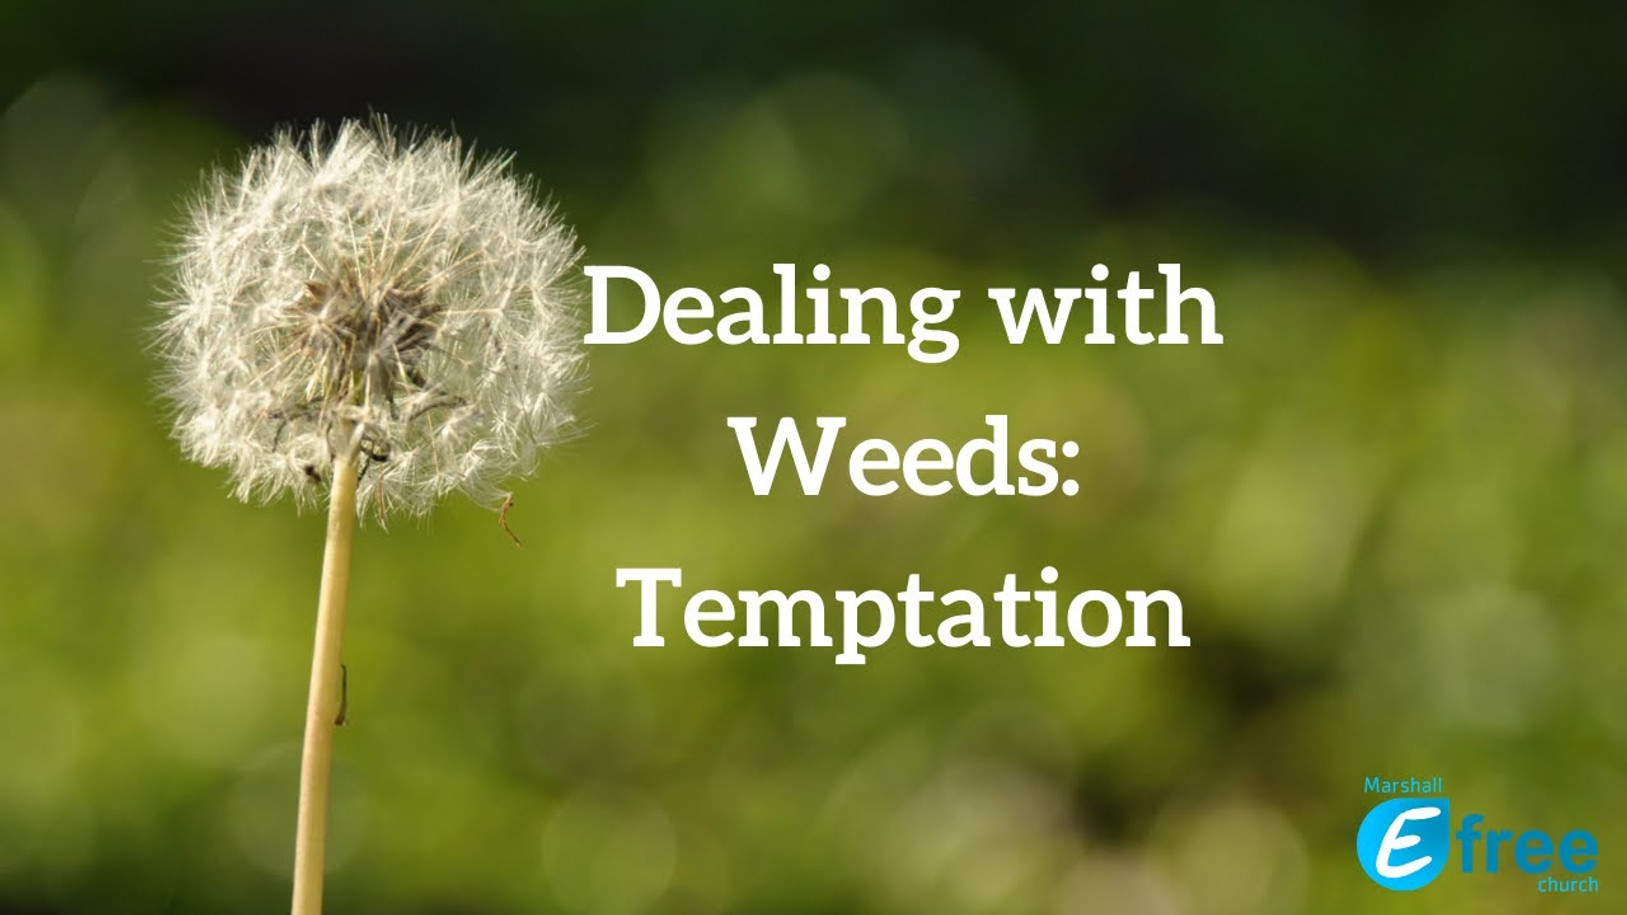 Dealing with Weeds: Temptation